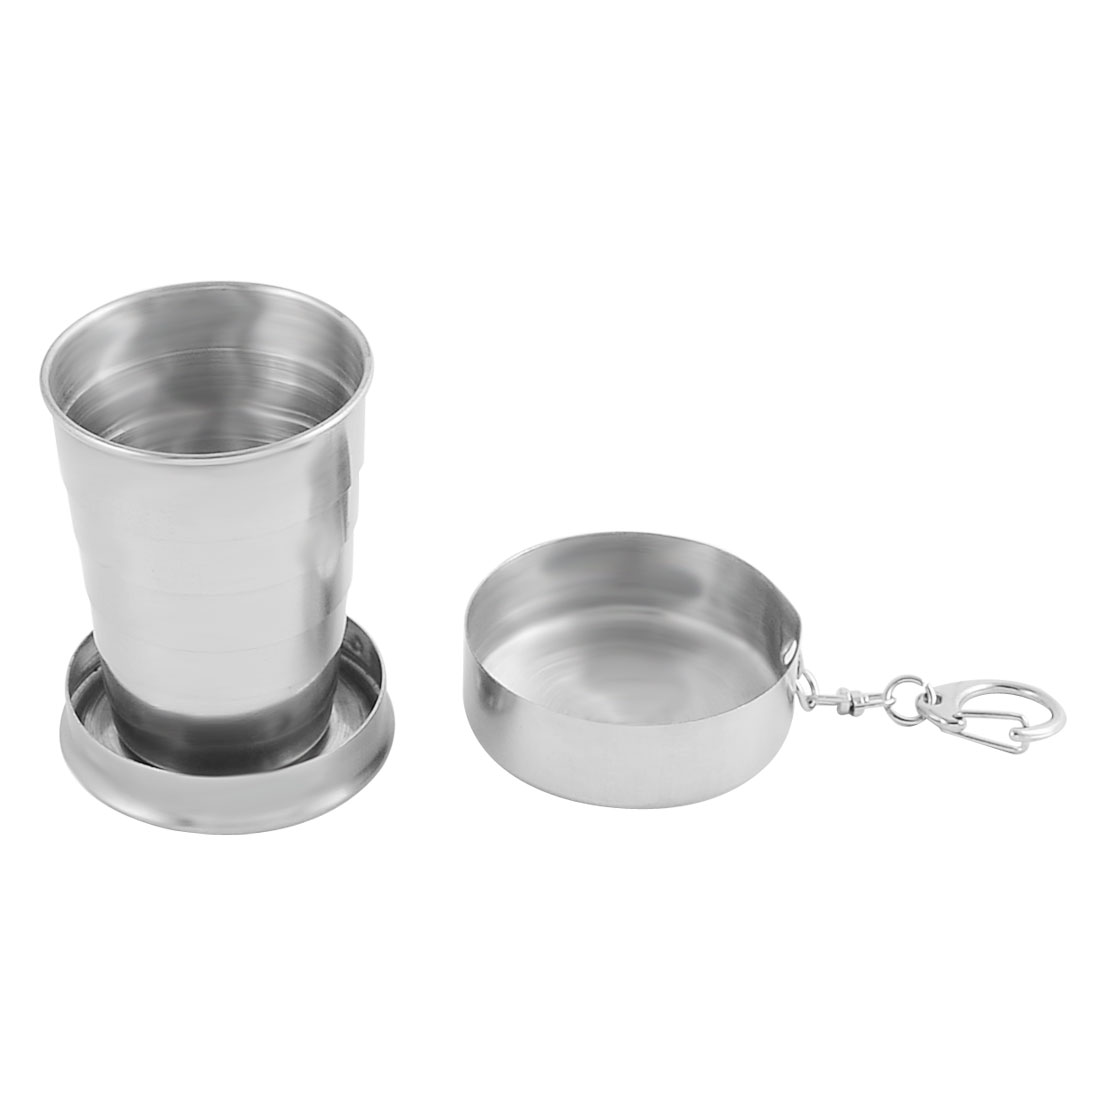 Travel Camping Stainless Steel Portable Folding Drinks Water Cup Silver Tone